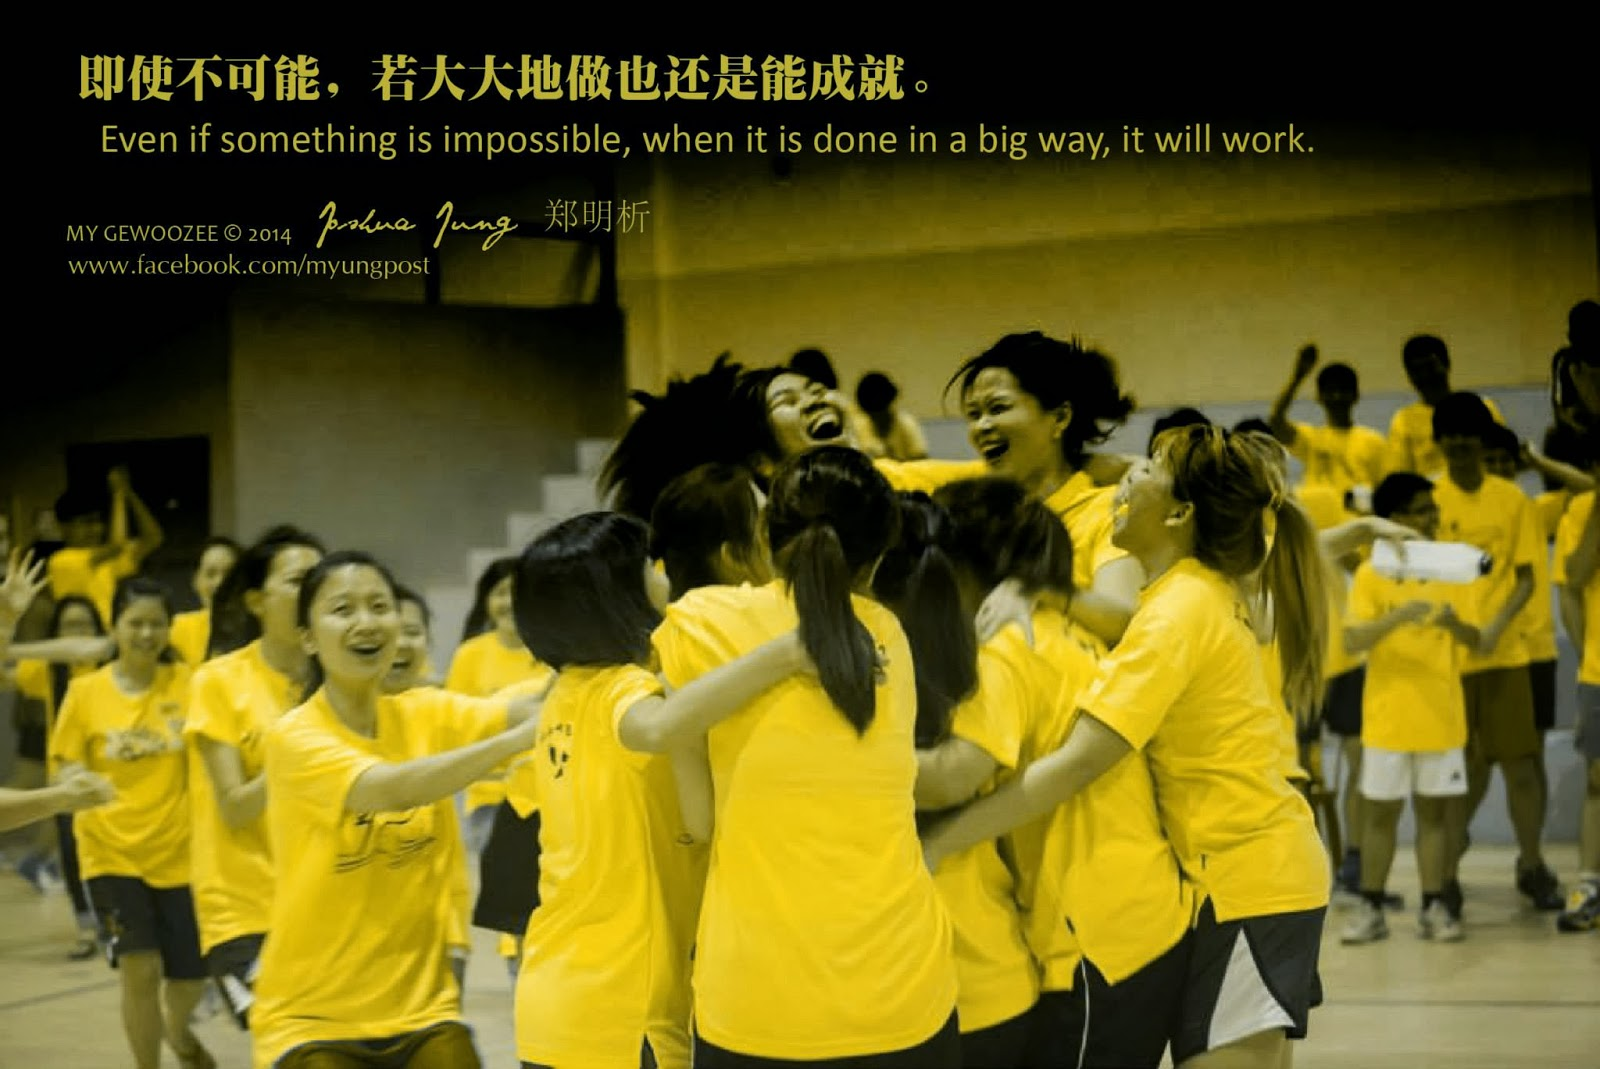 郑明析, Joshua Jung, Providence, Proverb, Religion, Faith, Yellow, Cheering, Hugging, Teamwork